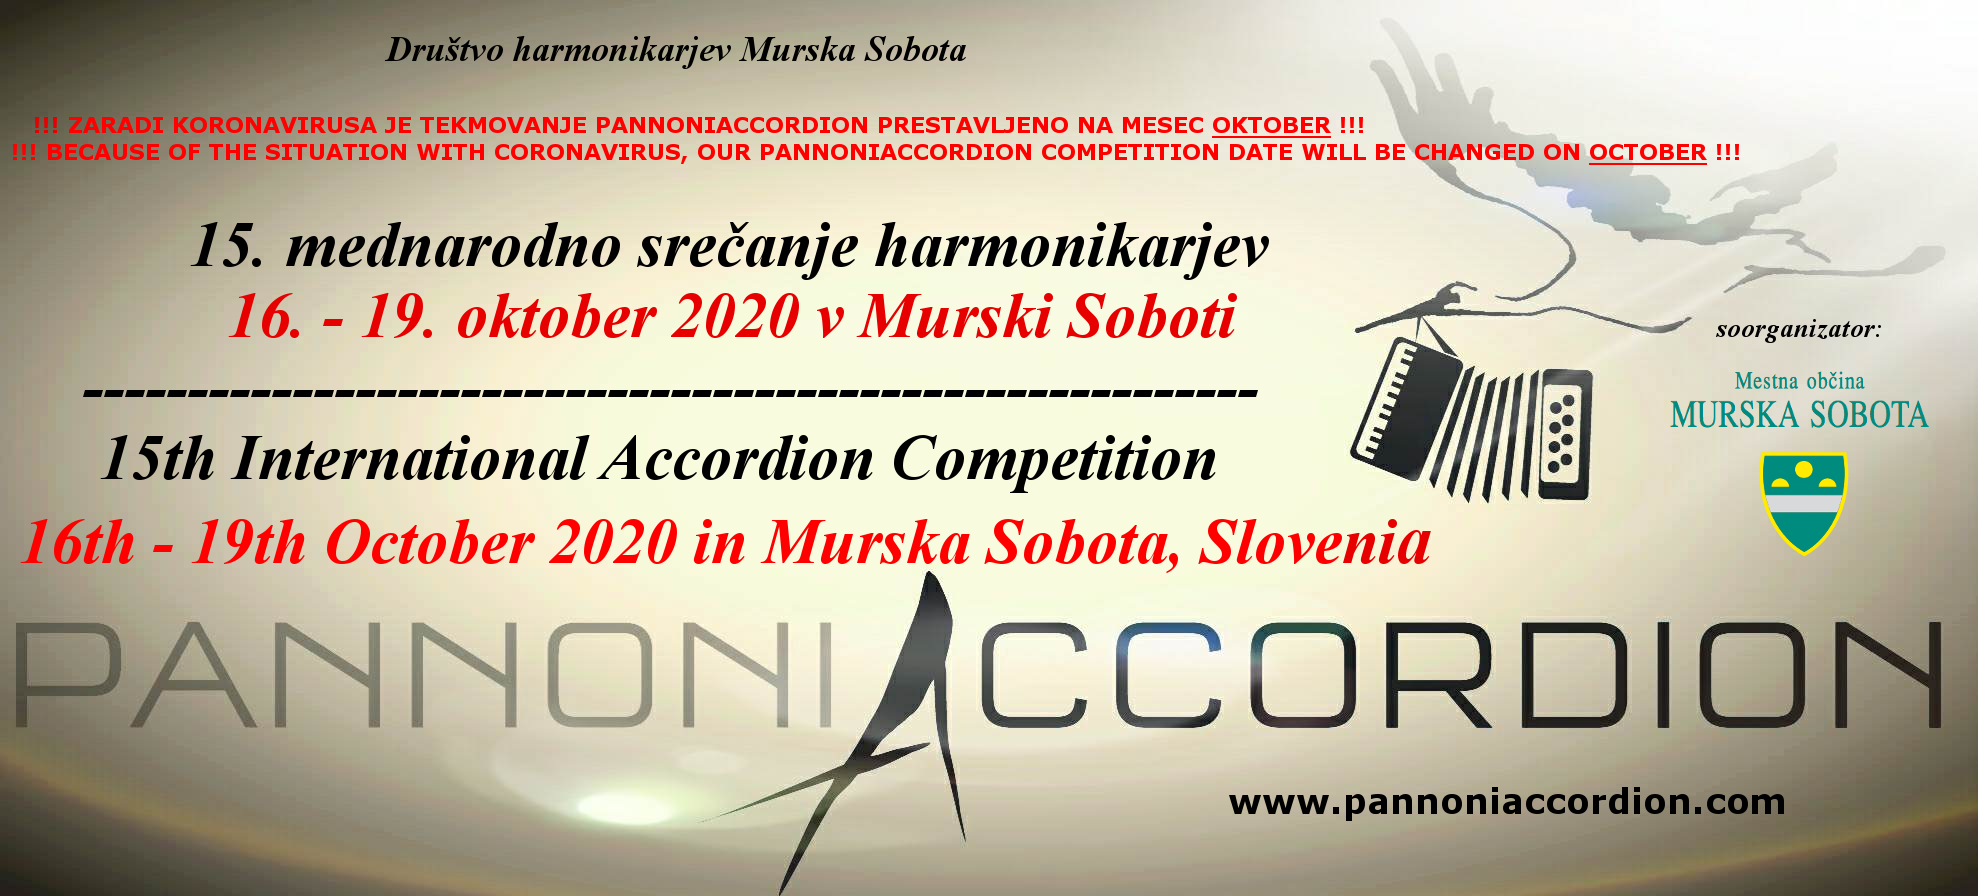 PannoniAccordion 2020!